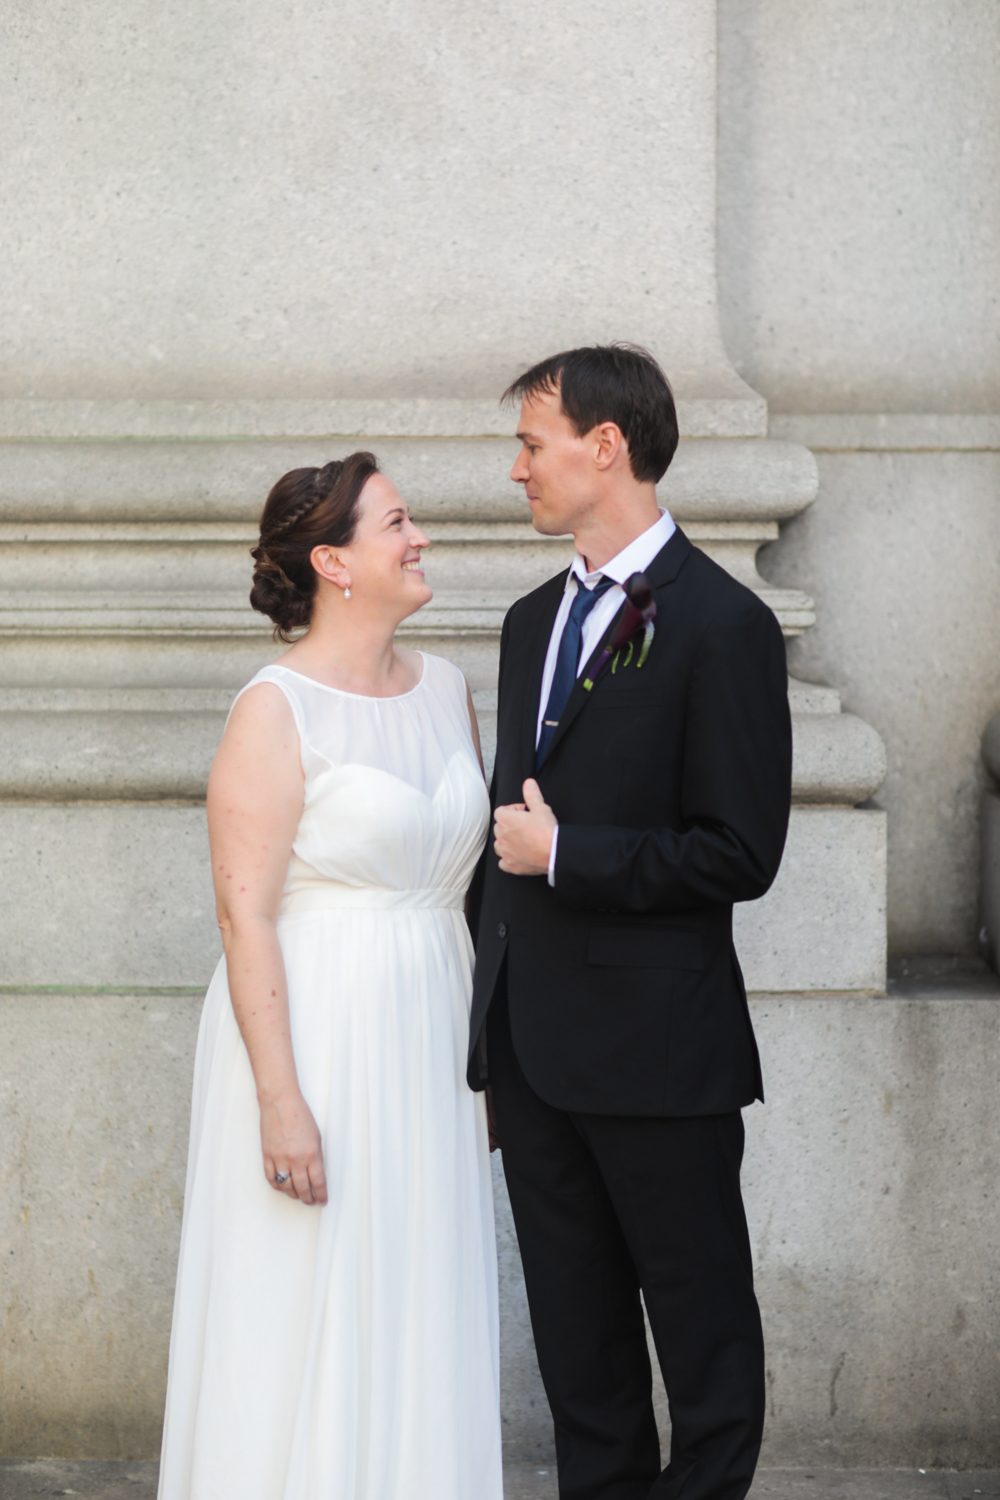 Portrait of a couple on their wedding day. The bride is wearing a Jenny Yoo Collection dress from ModCloth and the groom is wearing a dark suit and blue tie.